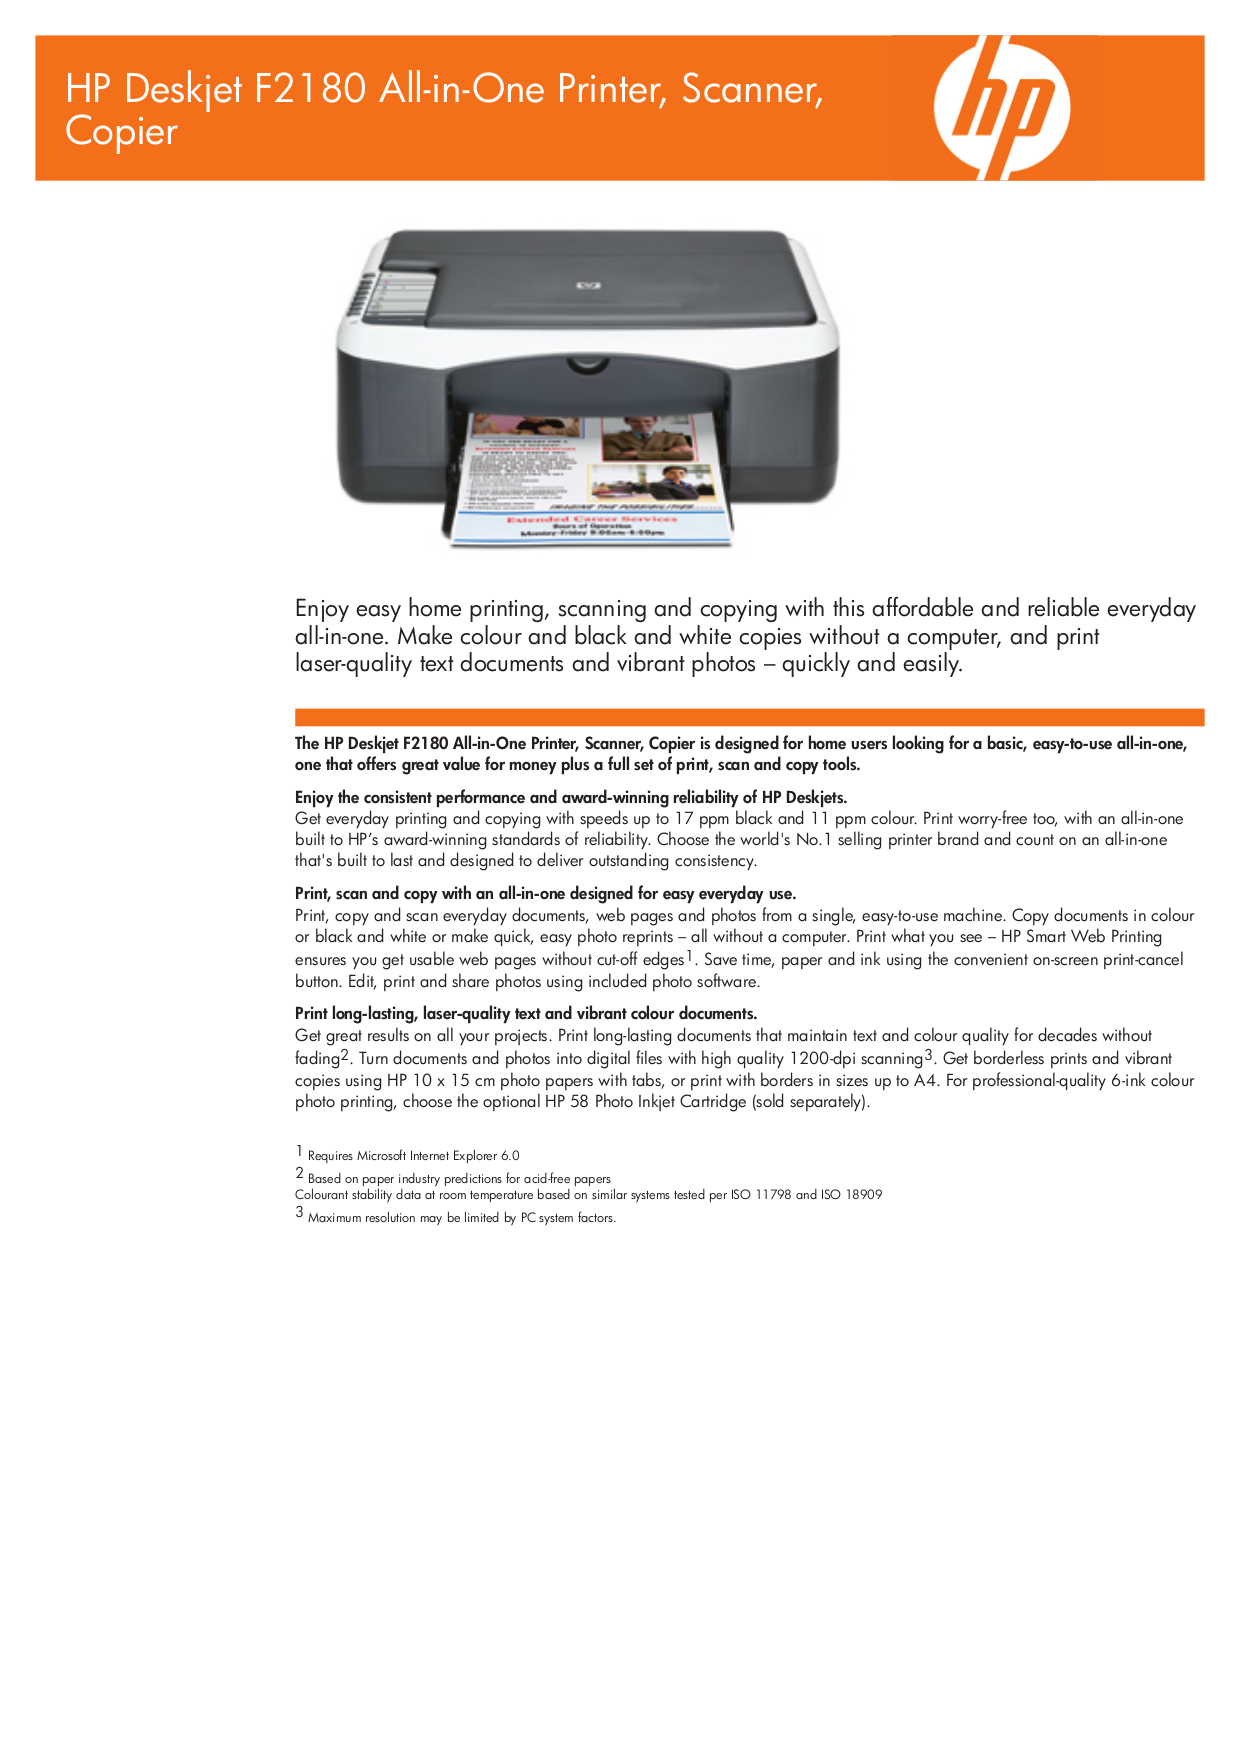 Solved Software for discontinued HP printer F - HP Support Community